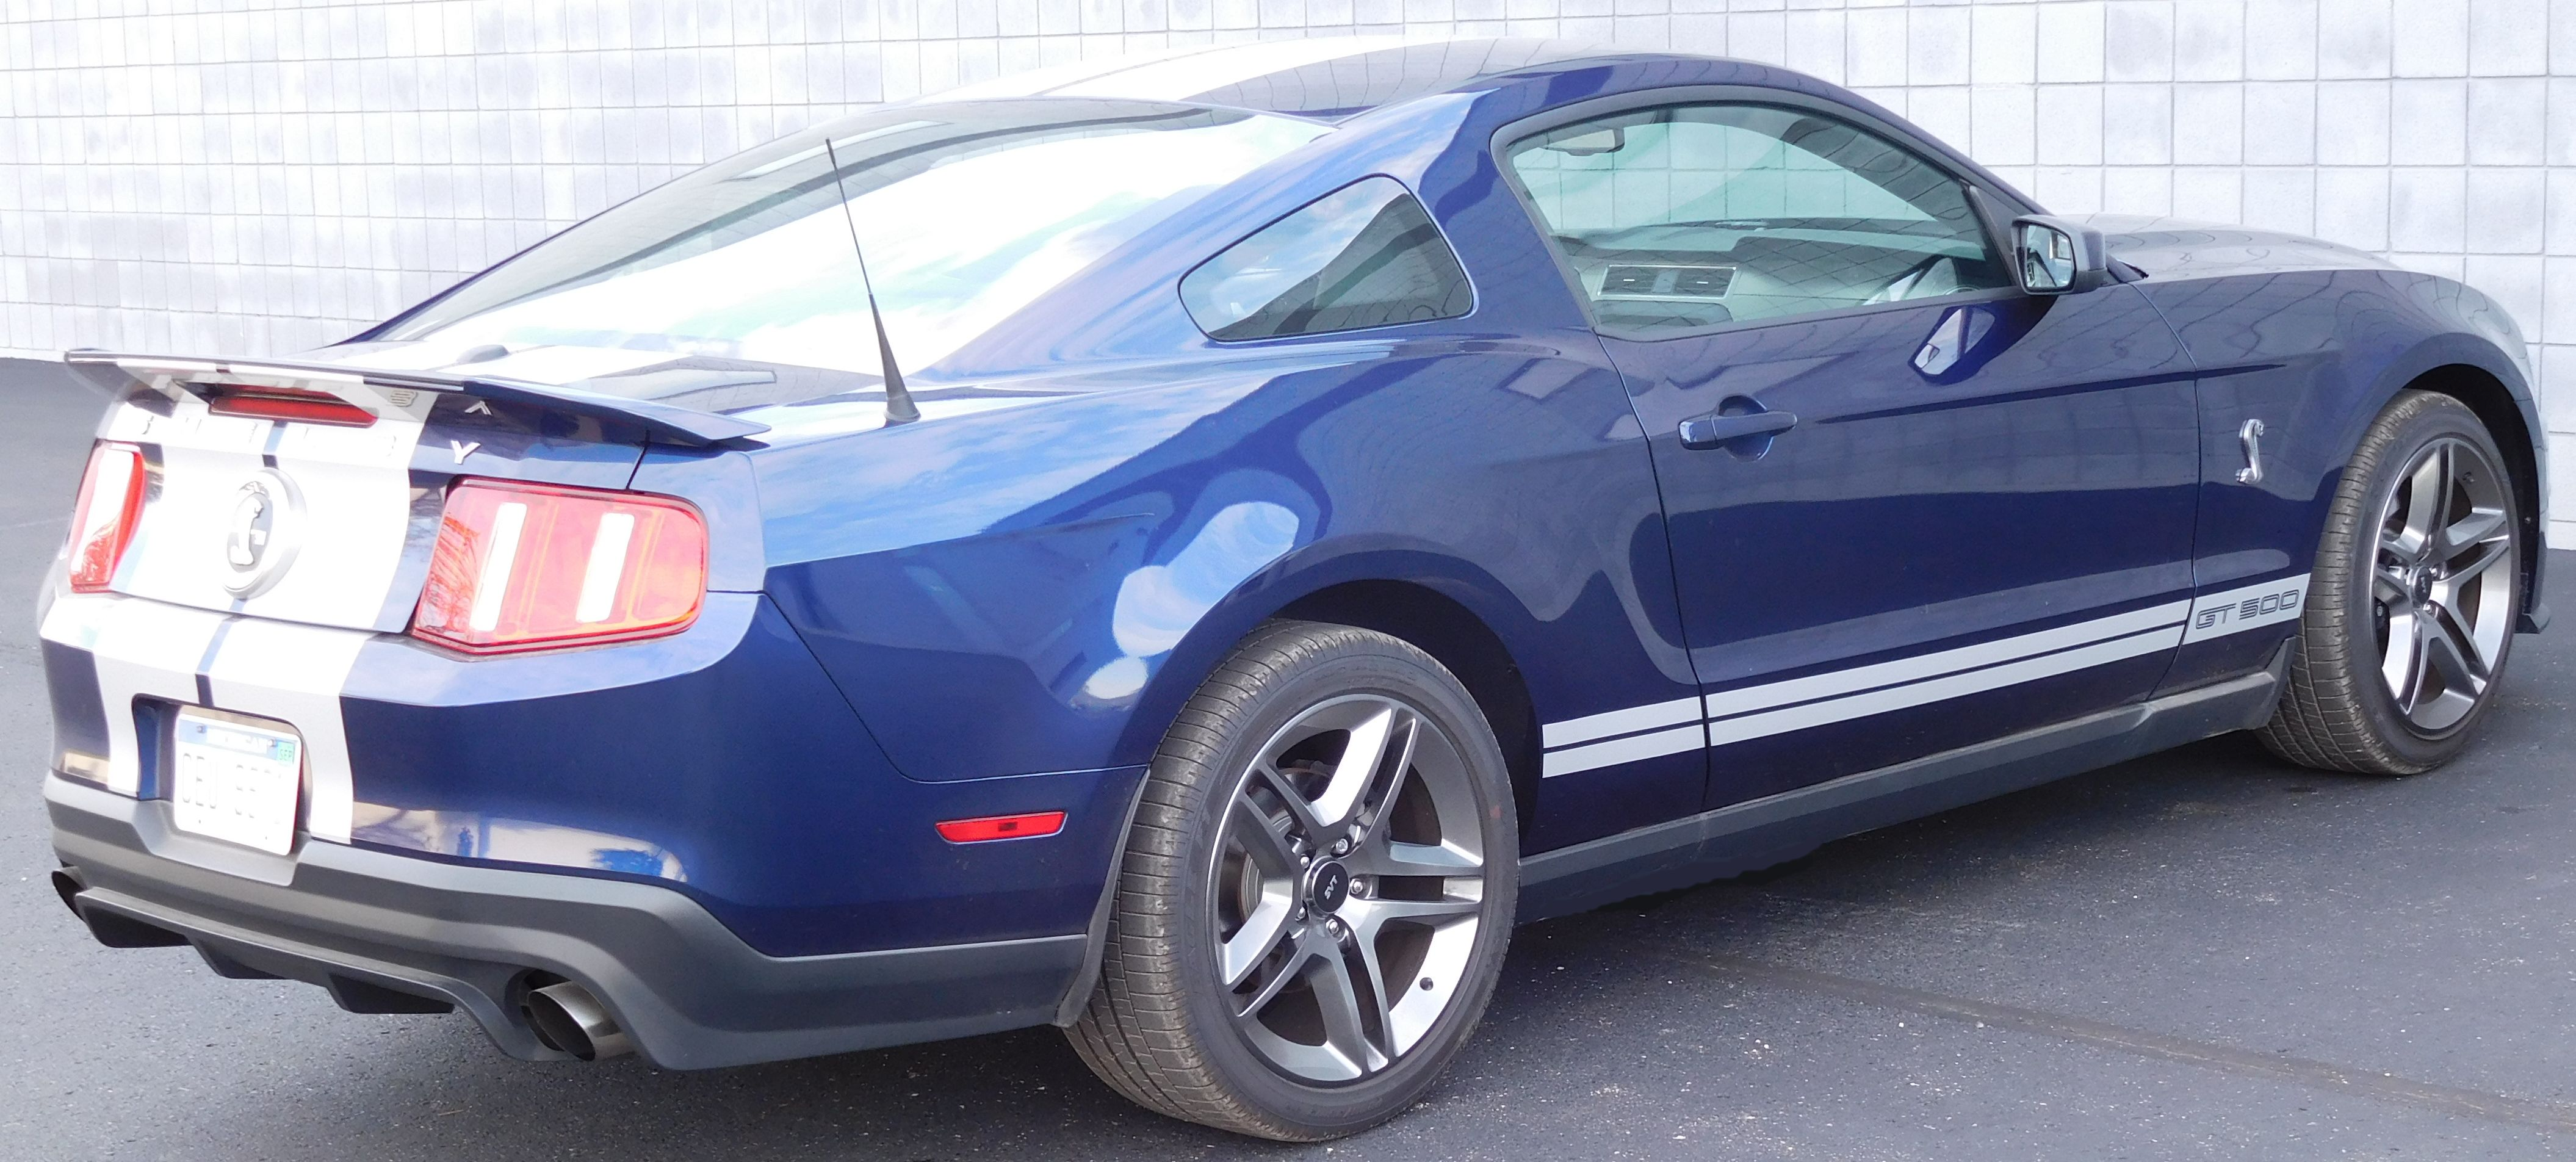 2011 Mustang Cobra Gt500 Blue White For Sale Broncograveyard Com